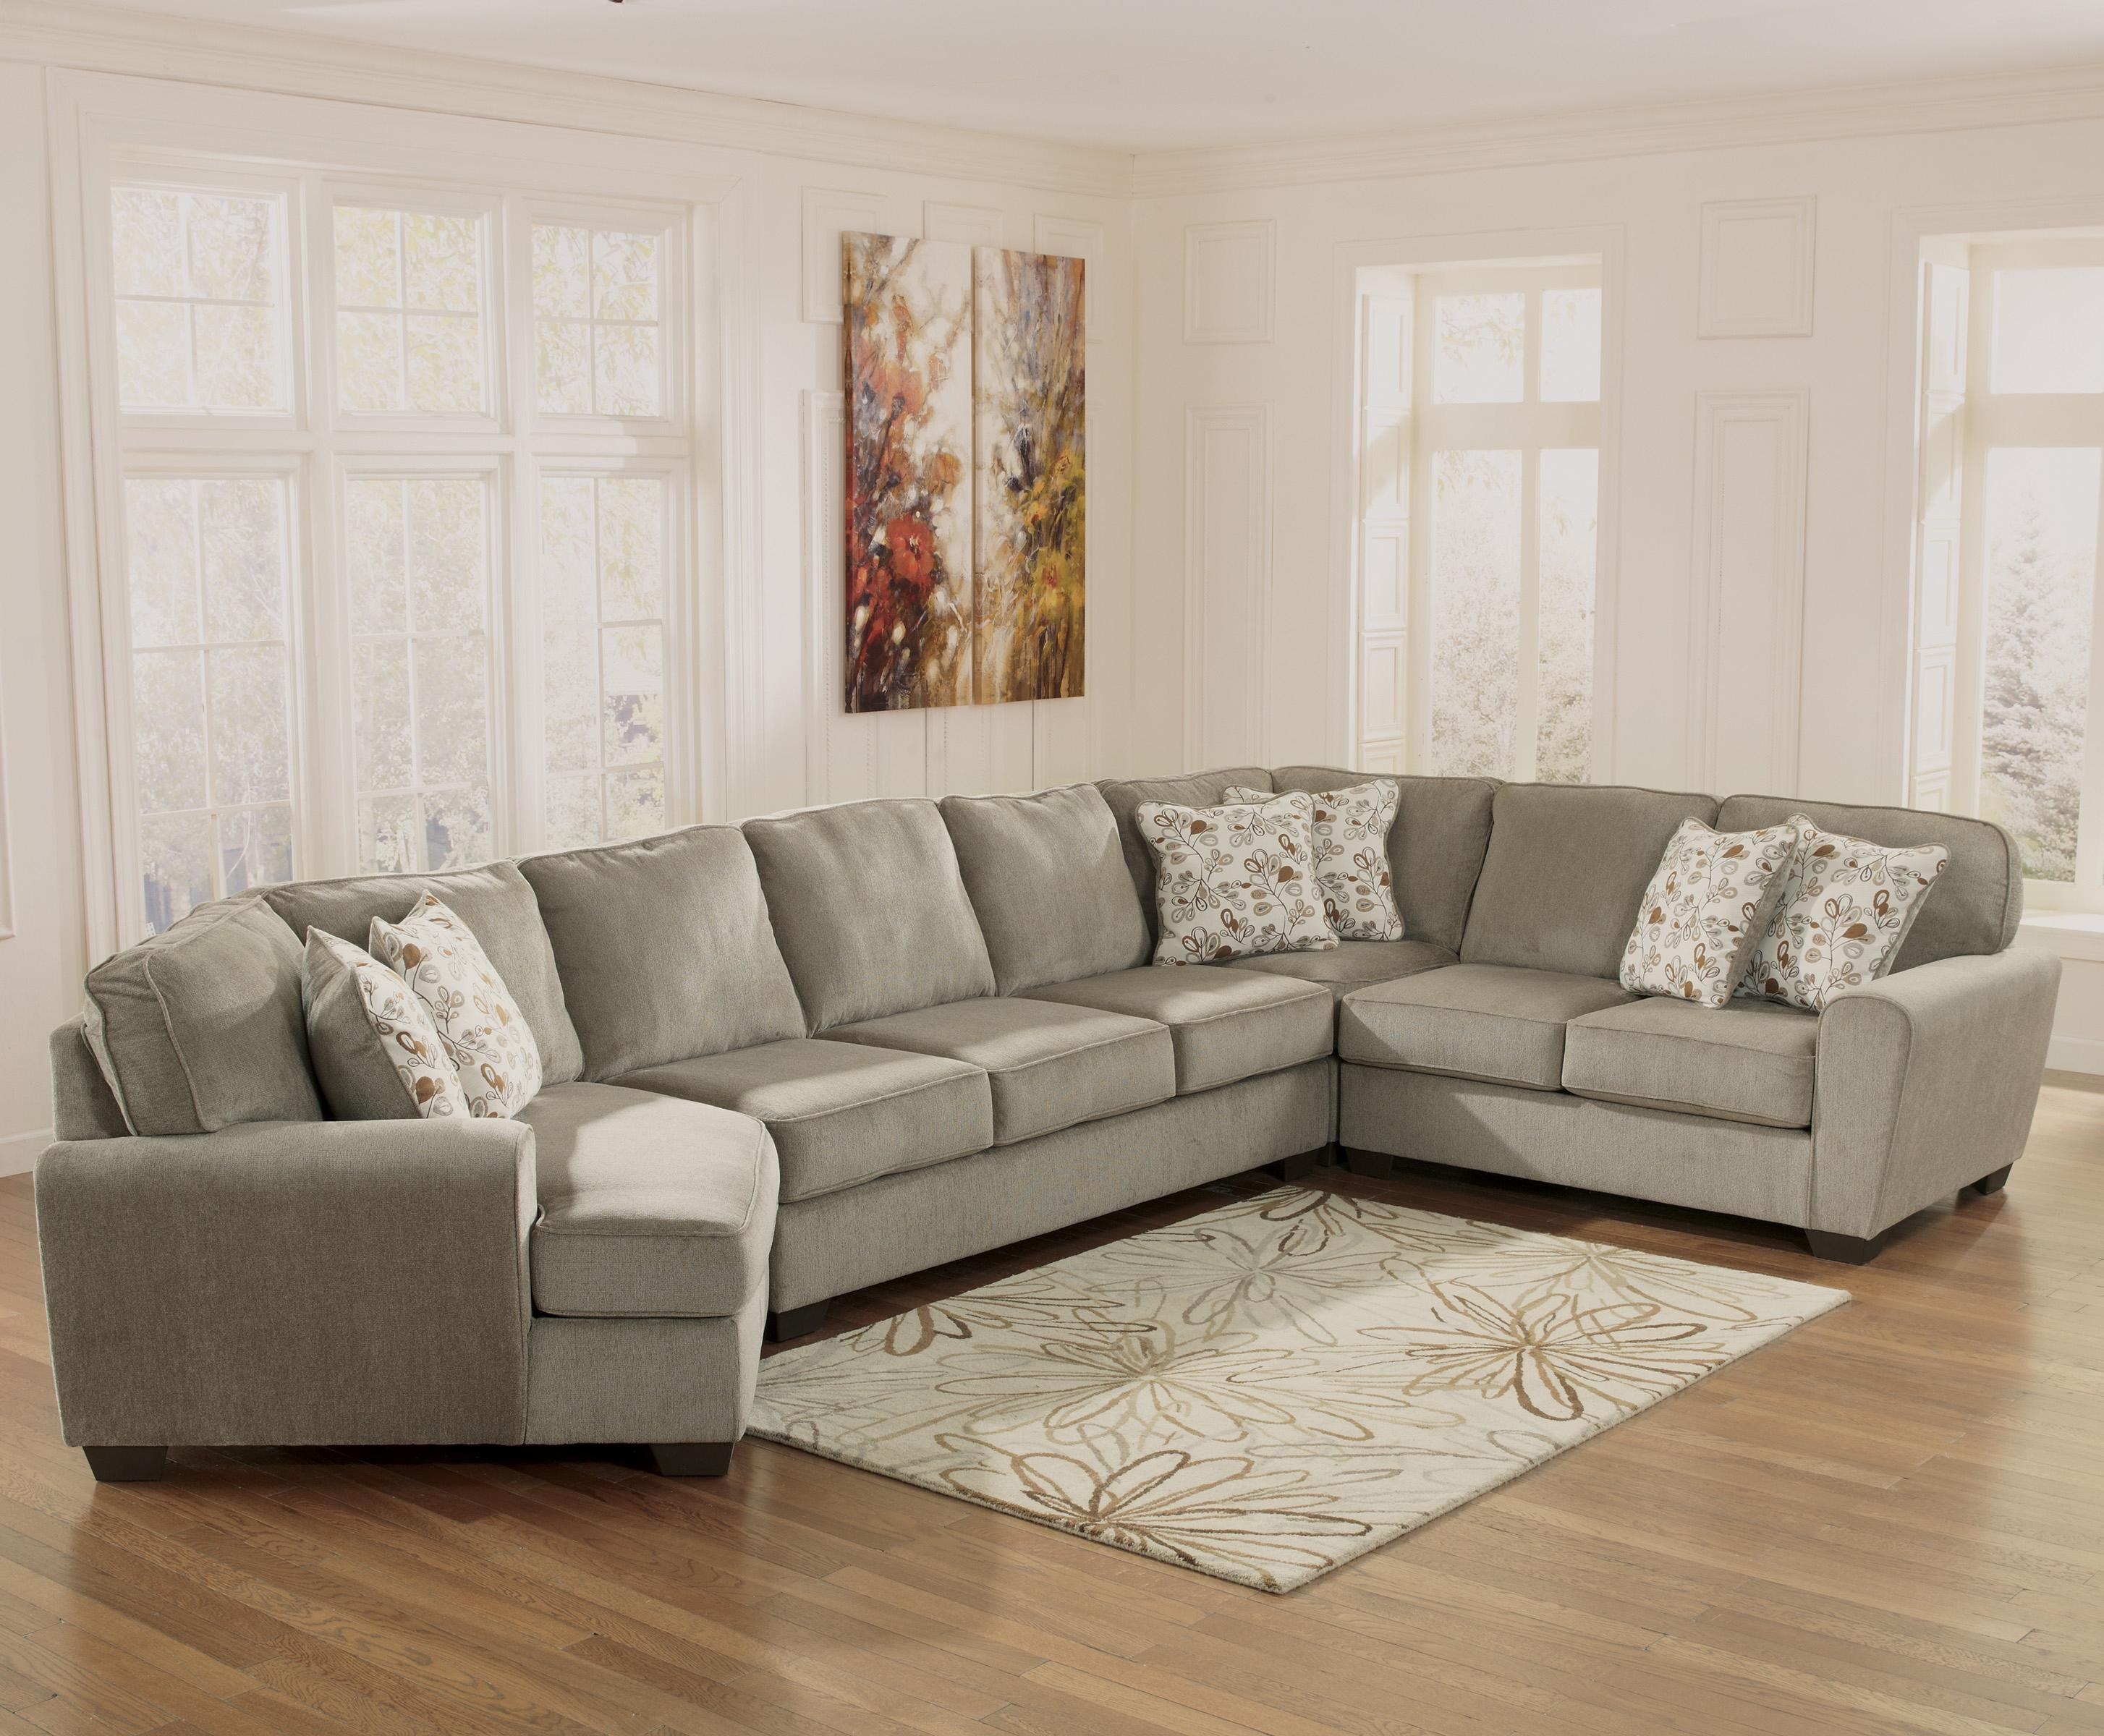 left chaise sofa sectional slipcover marshmallow furniture paw patrol 2 in 1 flip open ashley patola park patina 4 piece